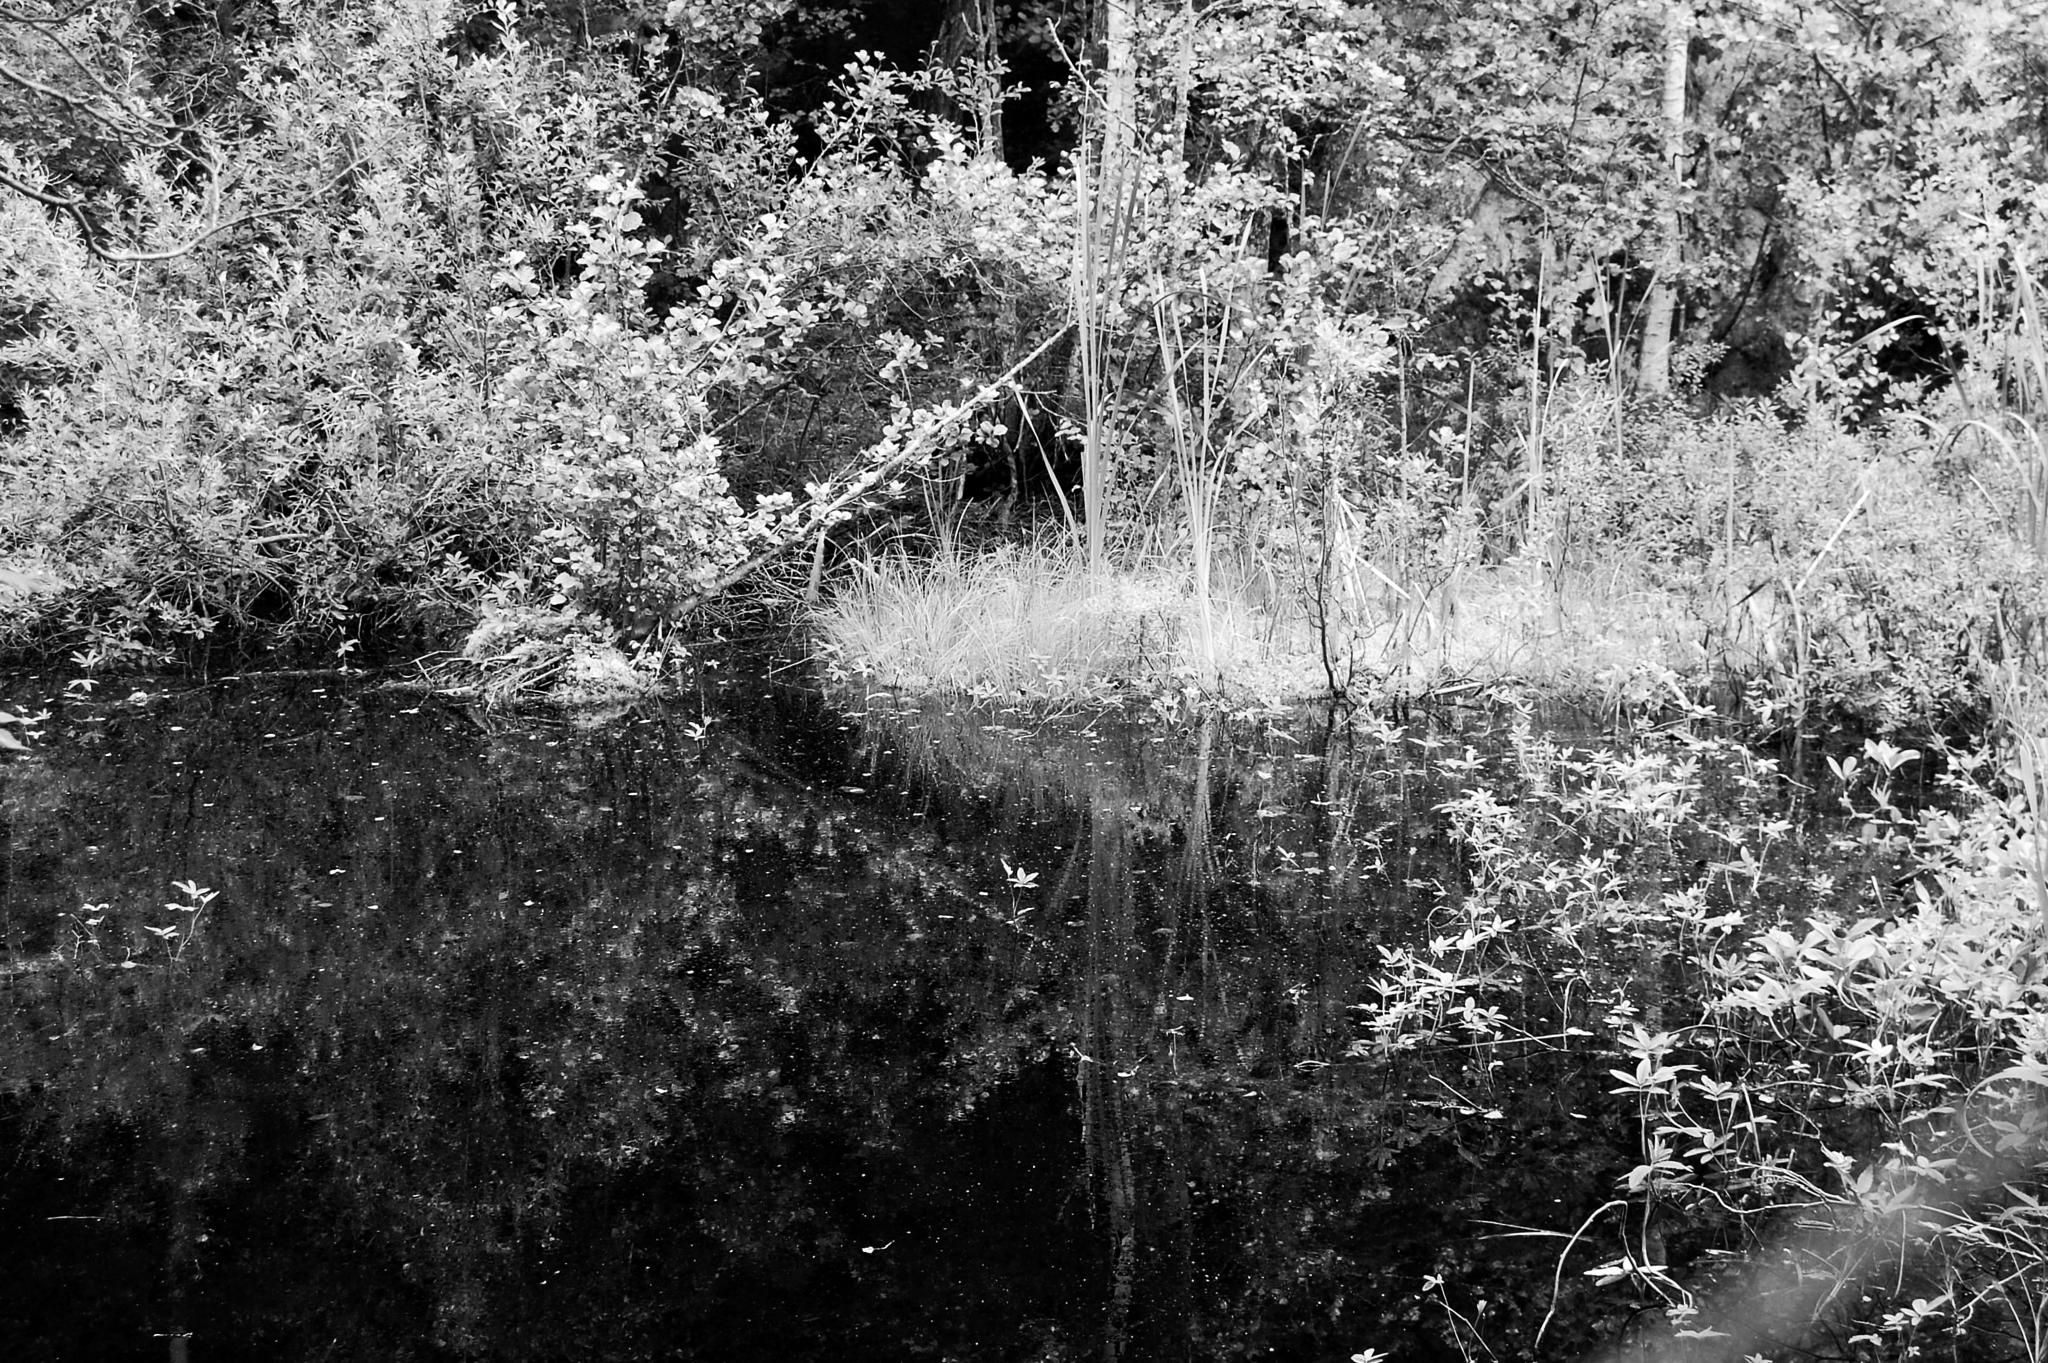 Reflection in dark water,B&W by lillemor.ekstrom ek